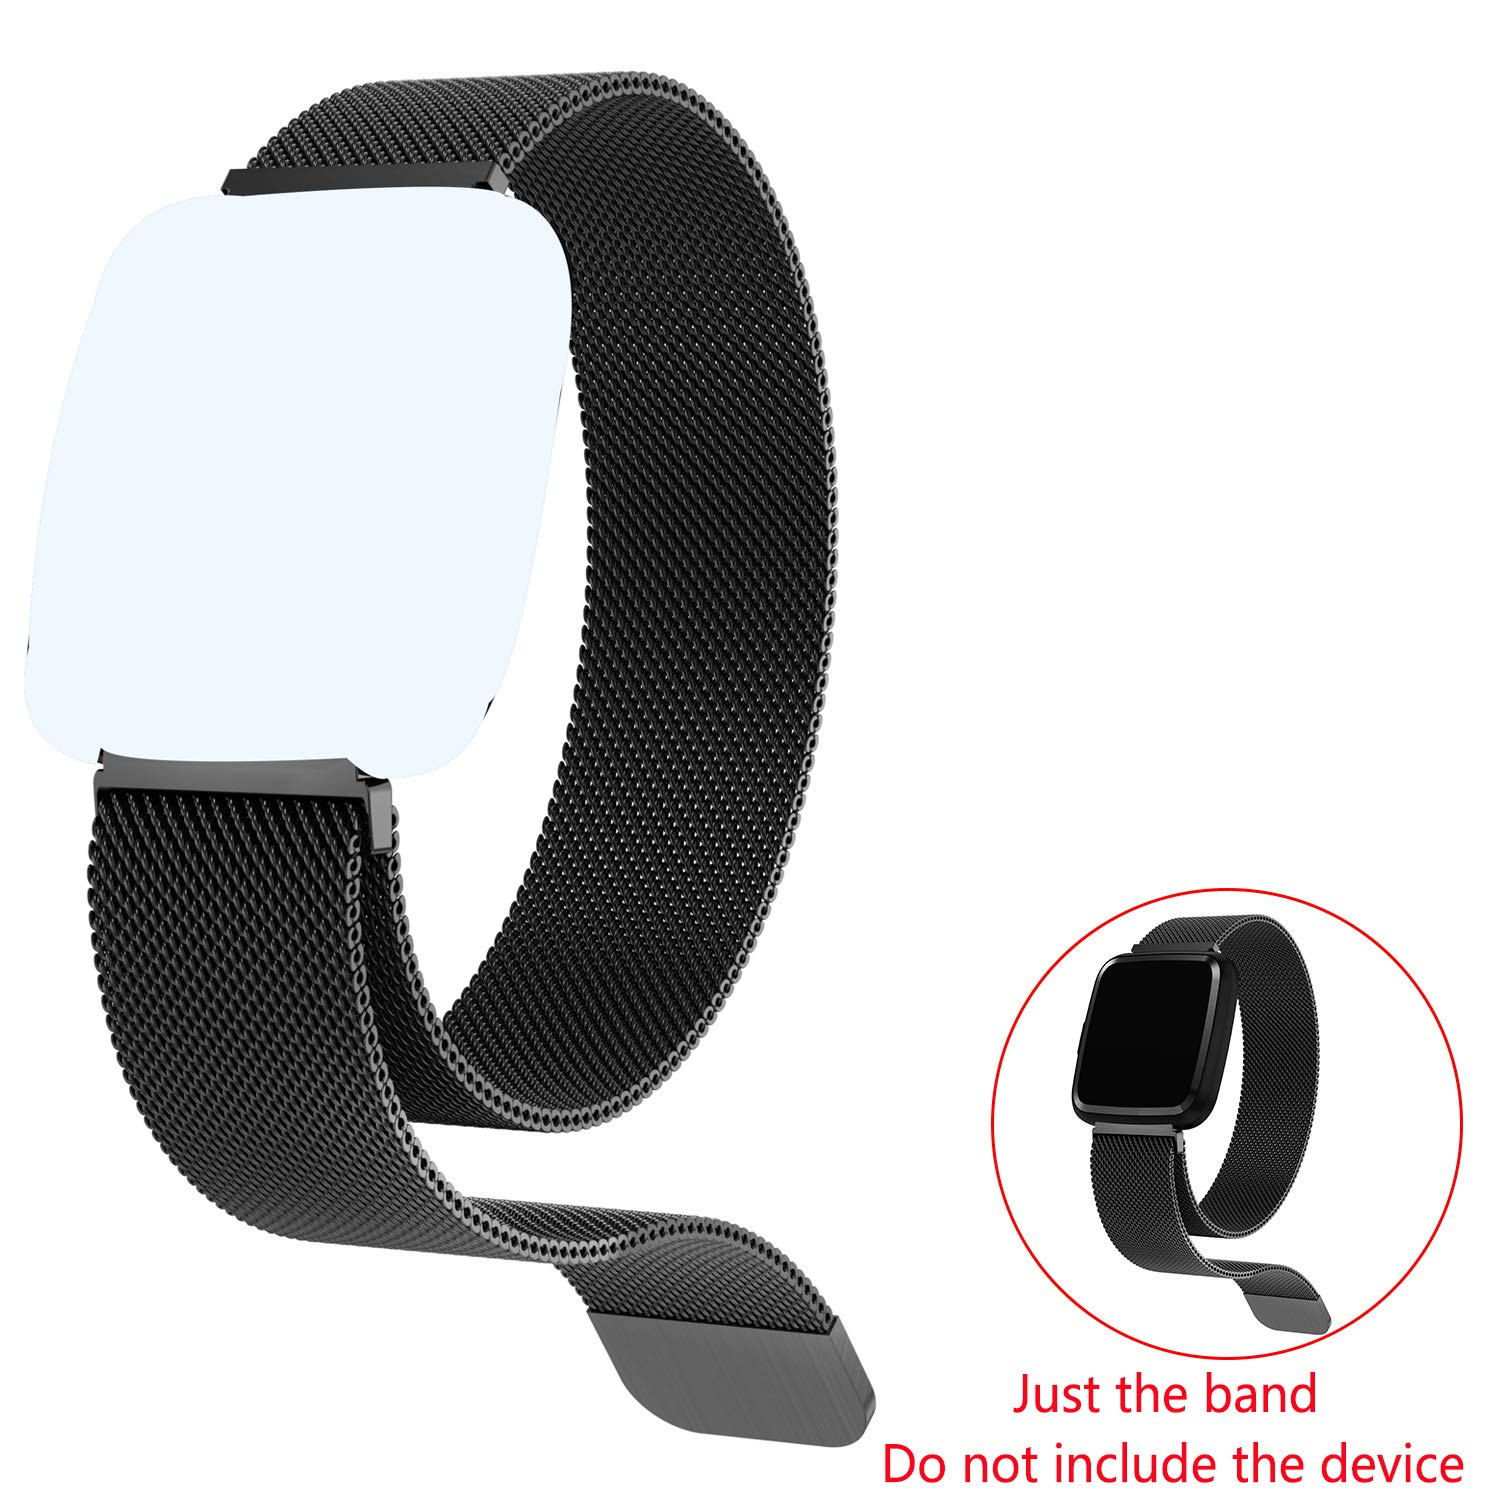 feifuns Replacement Band Fitness Tracker Watch, Magnetic Closure Stainless Steel Watch Band(Black)